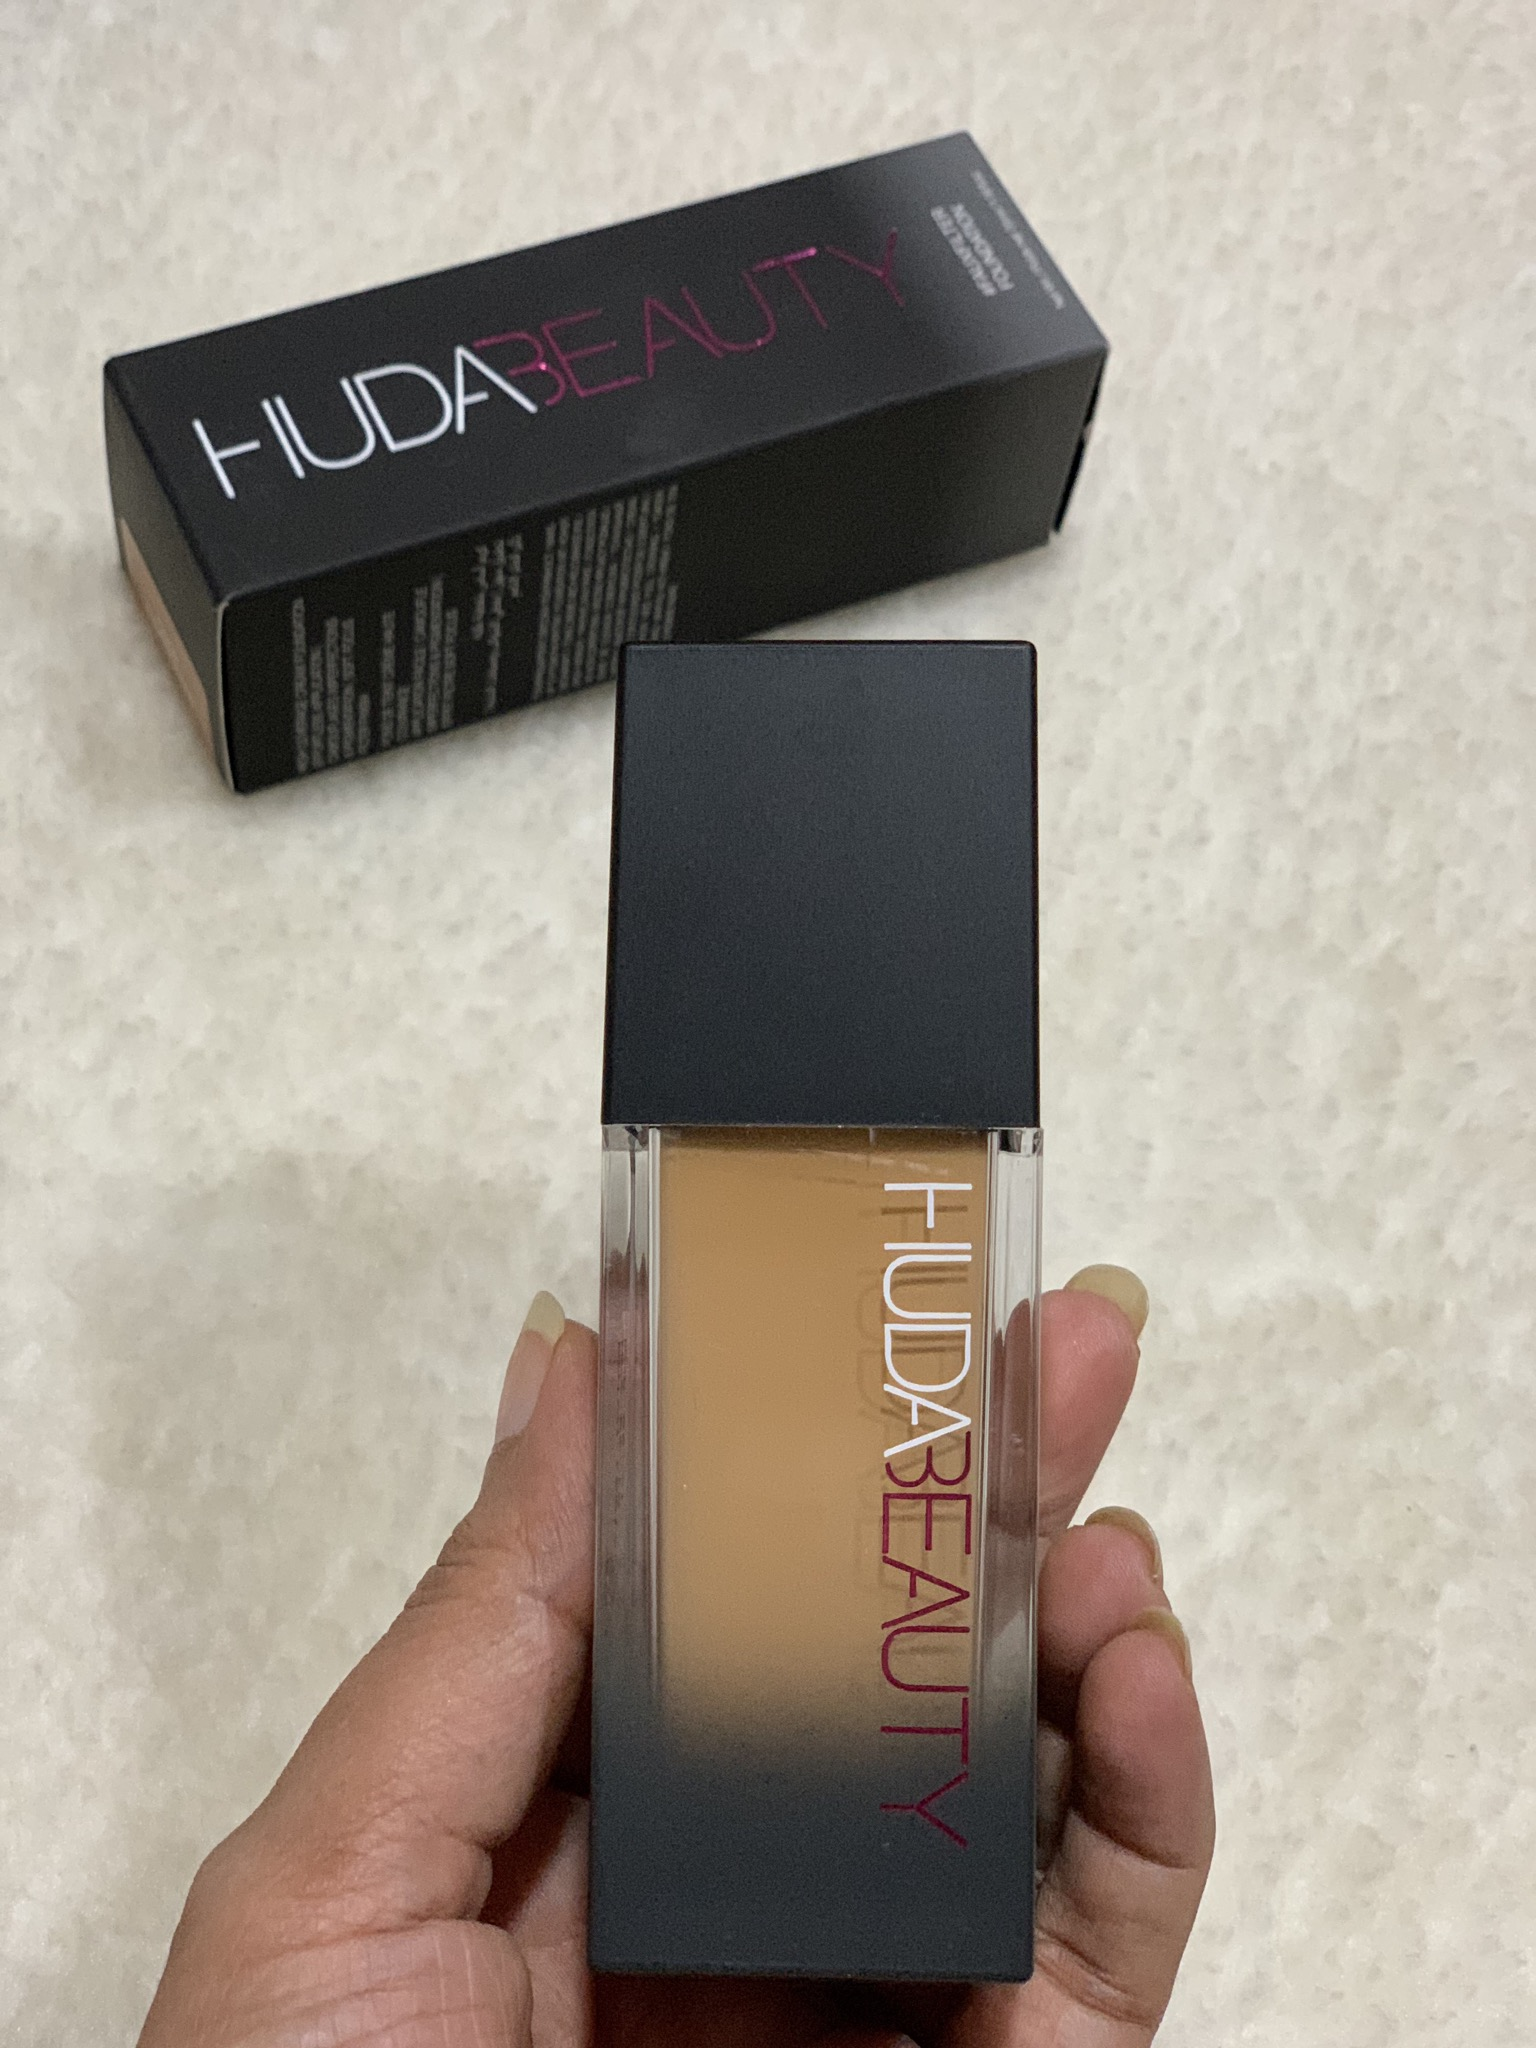 Huda Beauty Faux Filter Foundation pic 2-Highly Pigmented high coverage cream foundation-By vandanagoenka